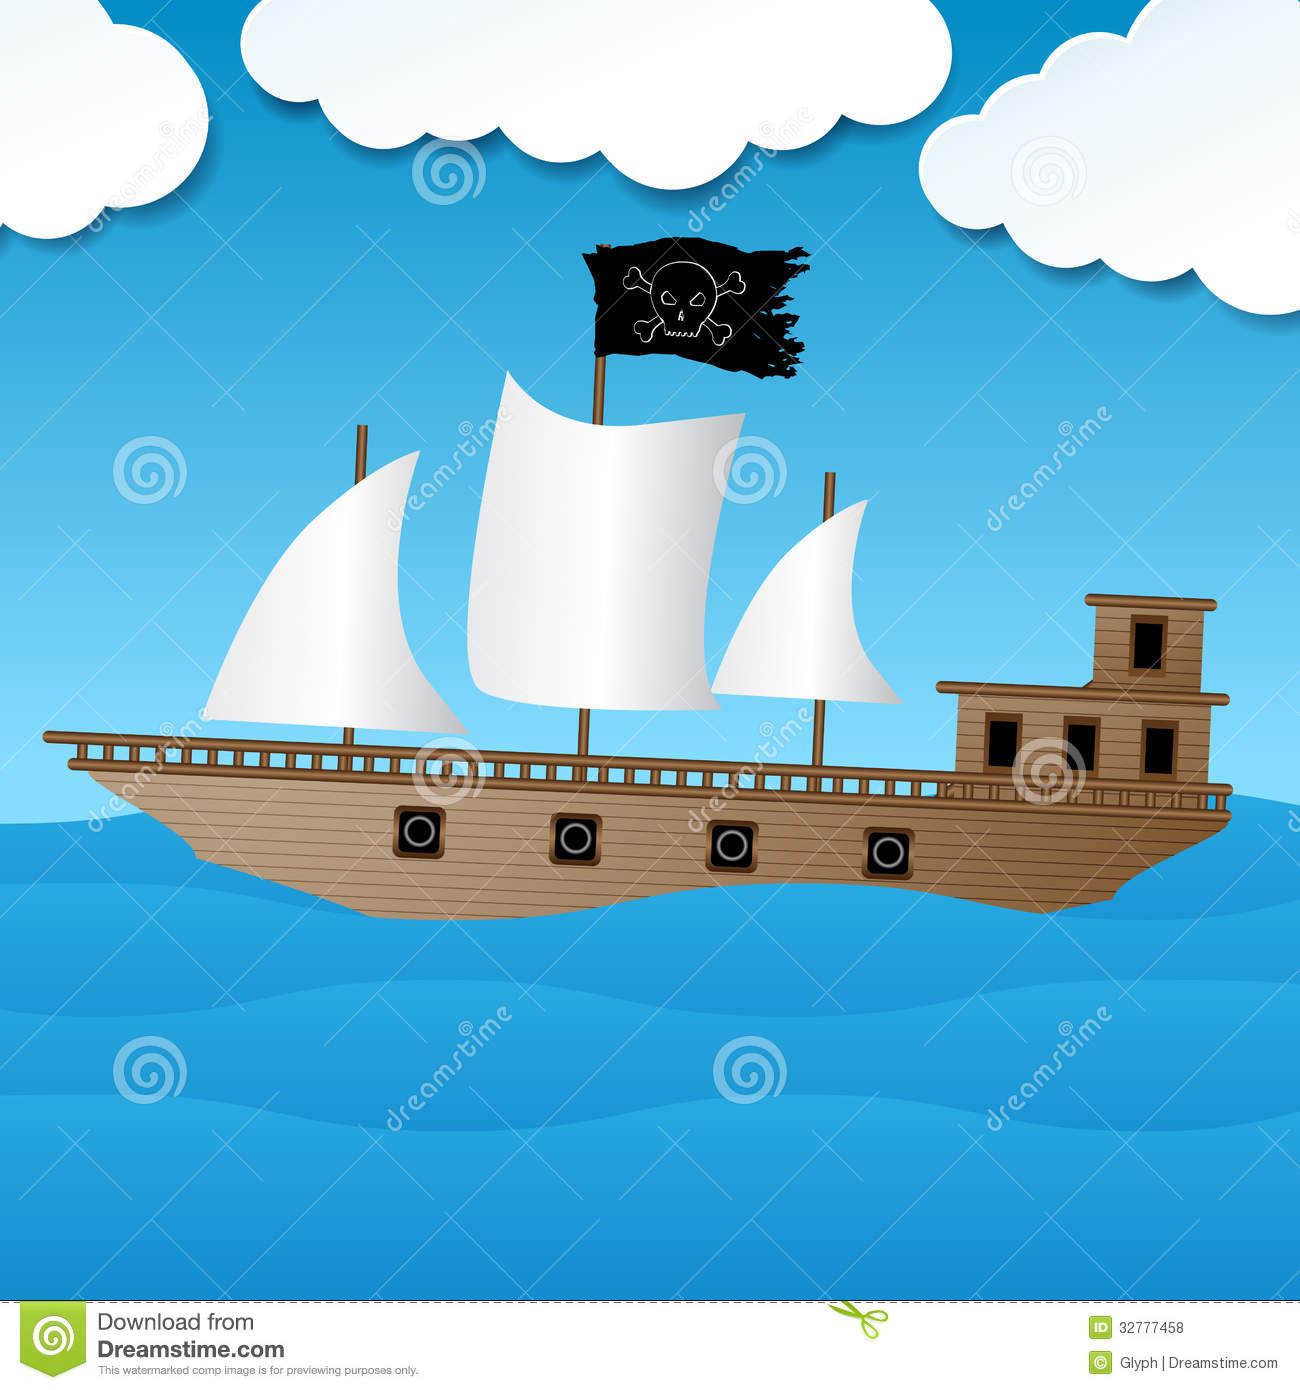 Cute Pirate Ship Sailing On The Ocean Royalty Free Stock Photos - Image: 32777458